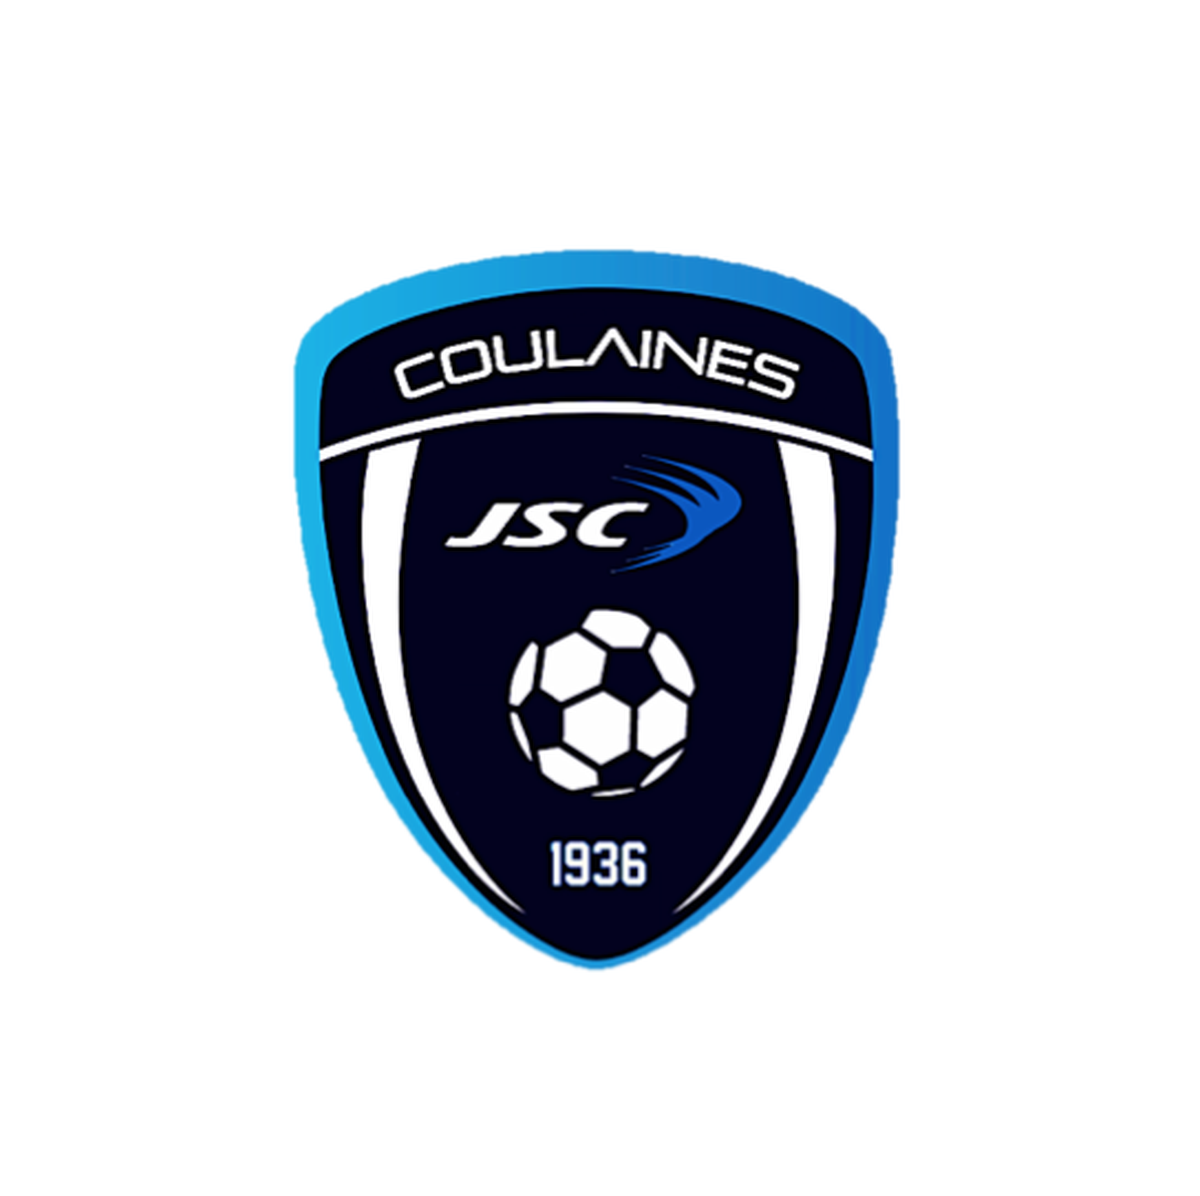 http://s3.static-footeo.com/uploads/js-coulaines/logo__ongu1g.png